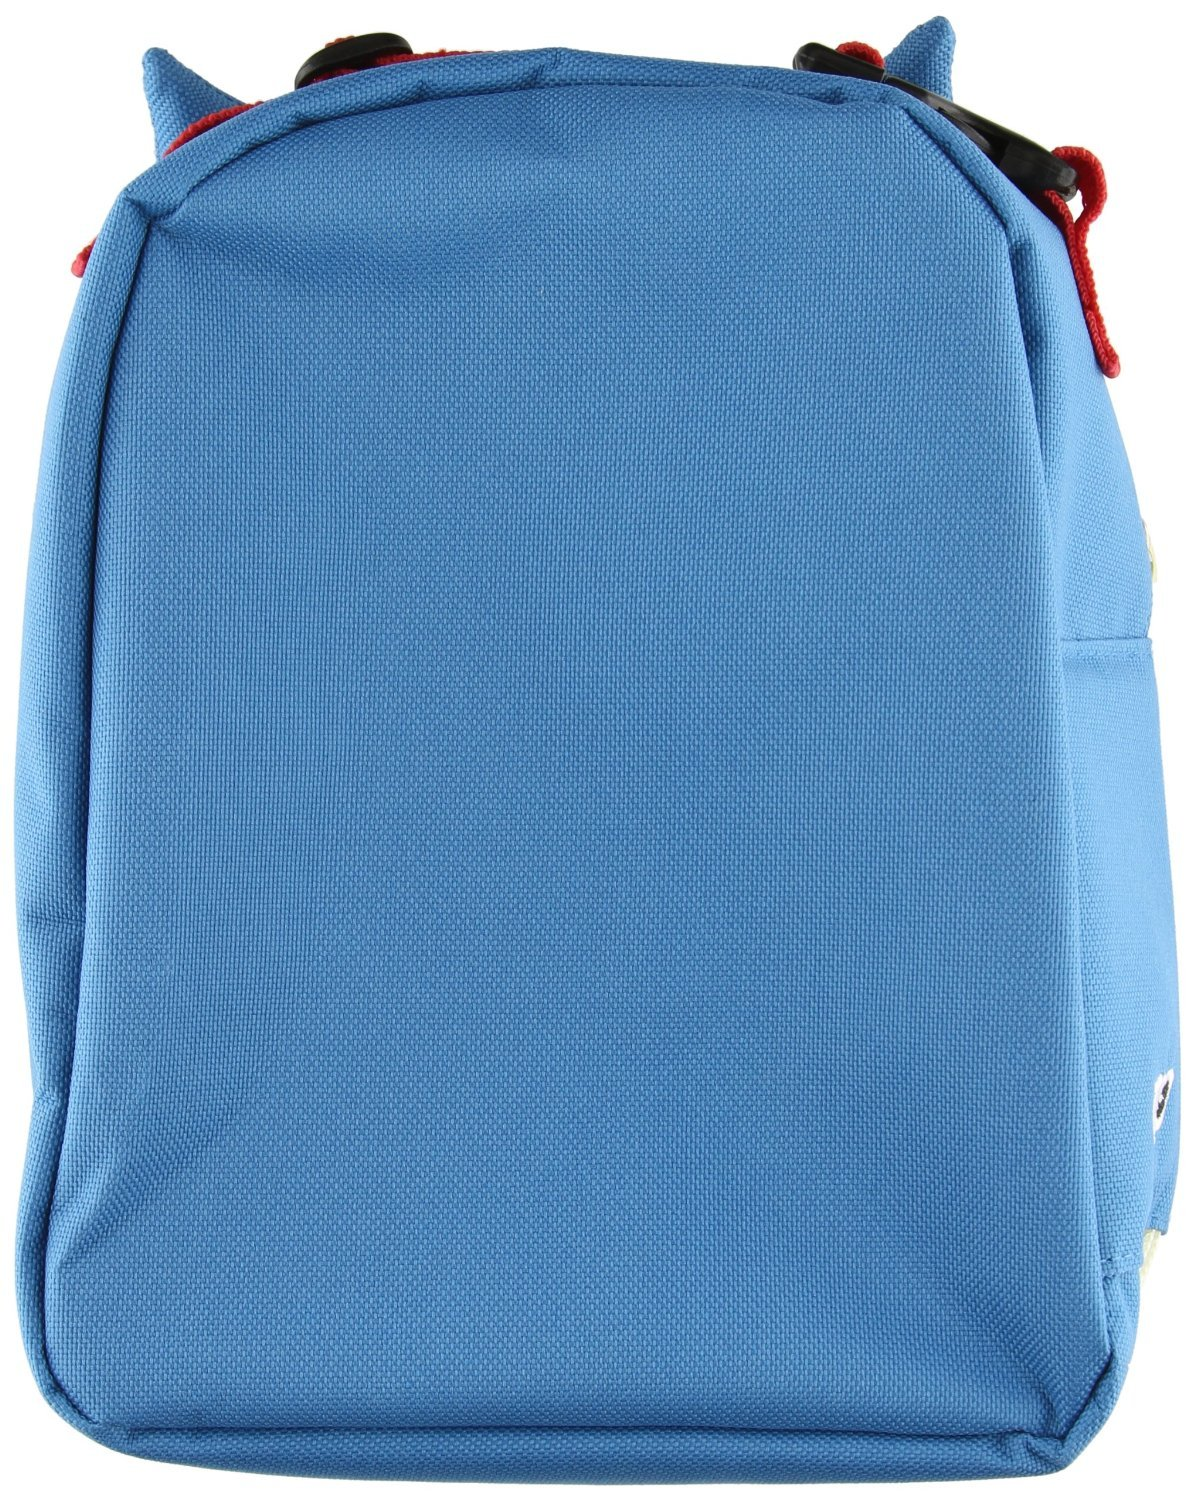 Lunchie Insulated Lunch Bag for children